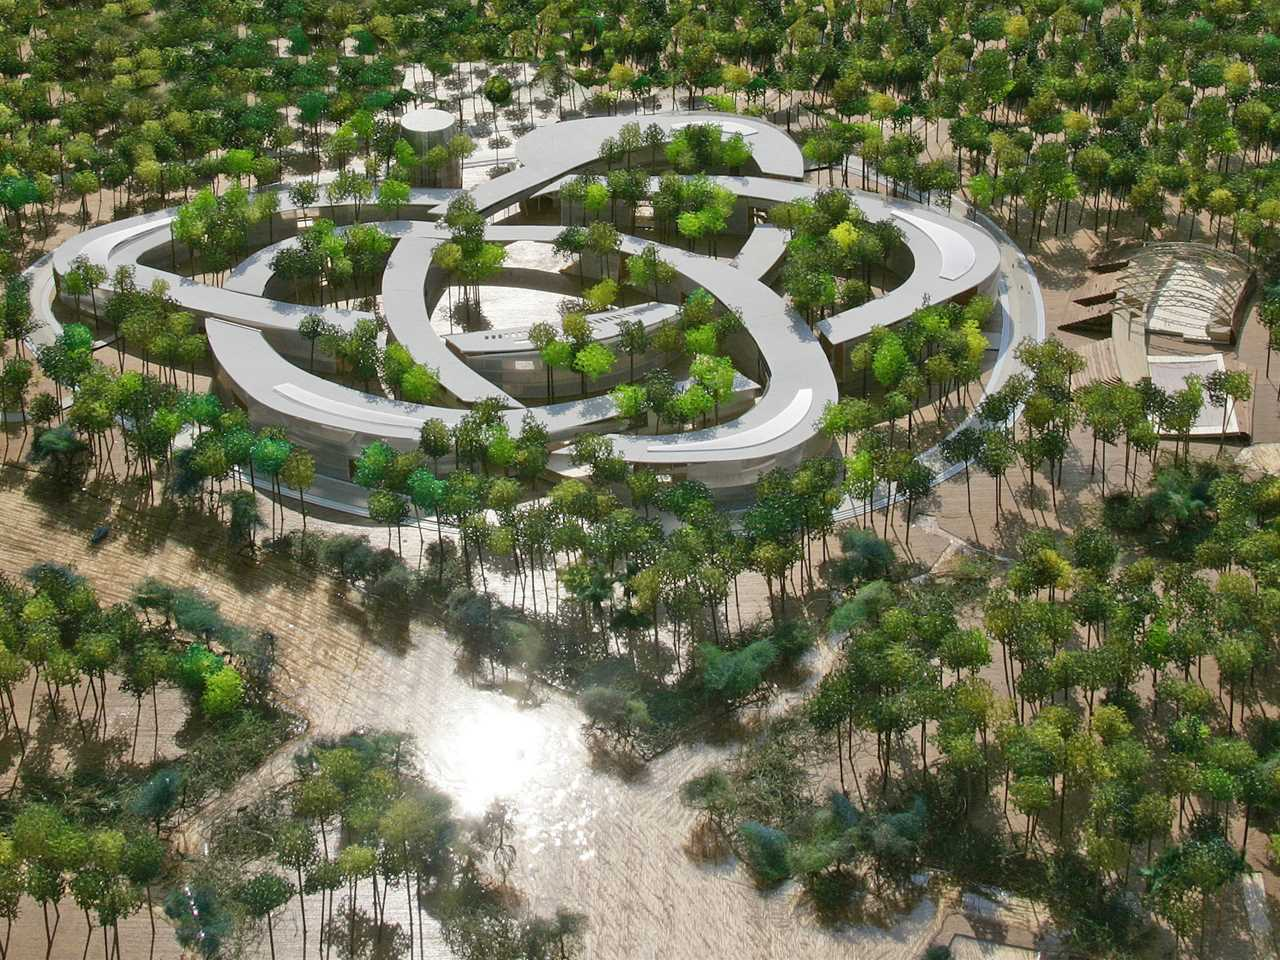 Global Holcim Awards Silver 2009: Low-impact greenfield university campus, Ho Chi Minh city, Vietnam